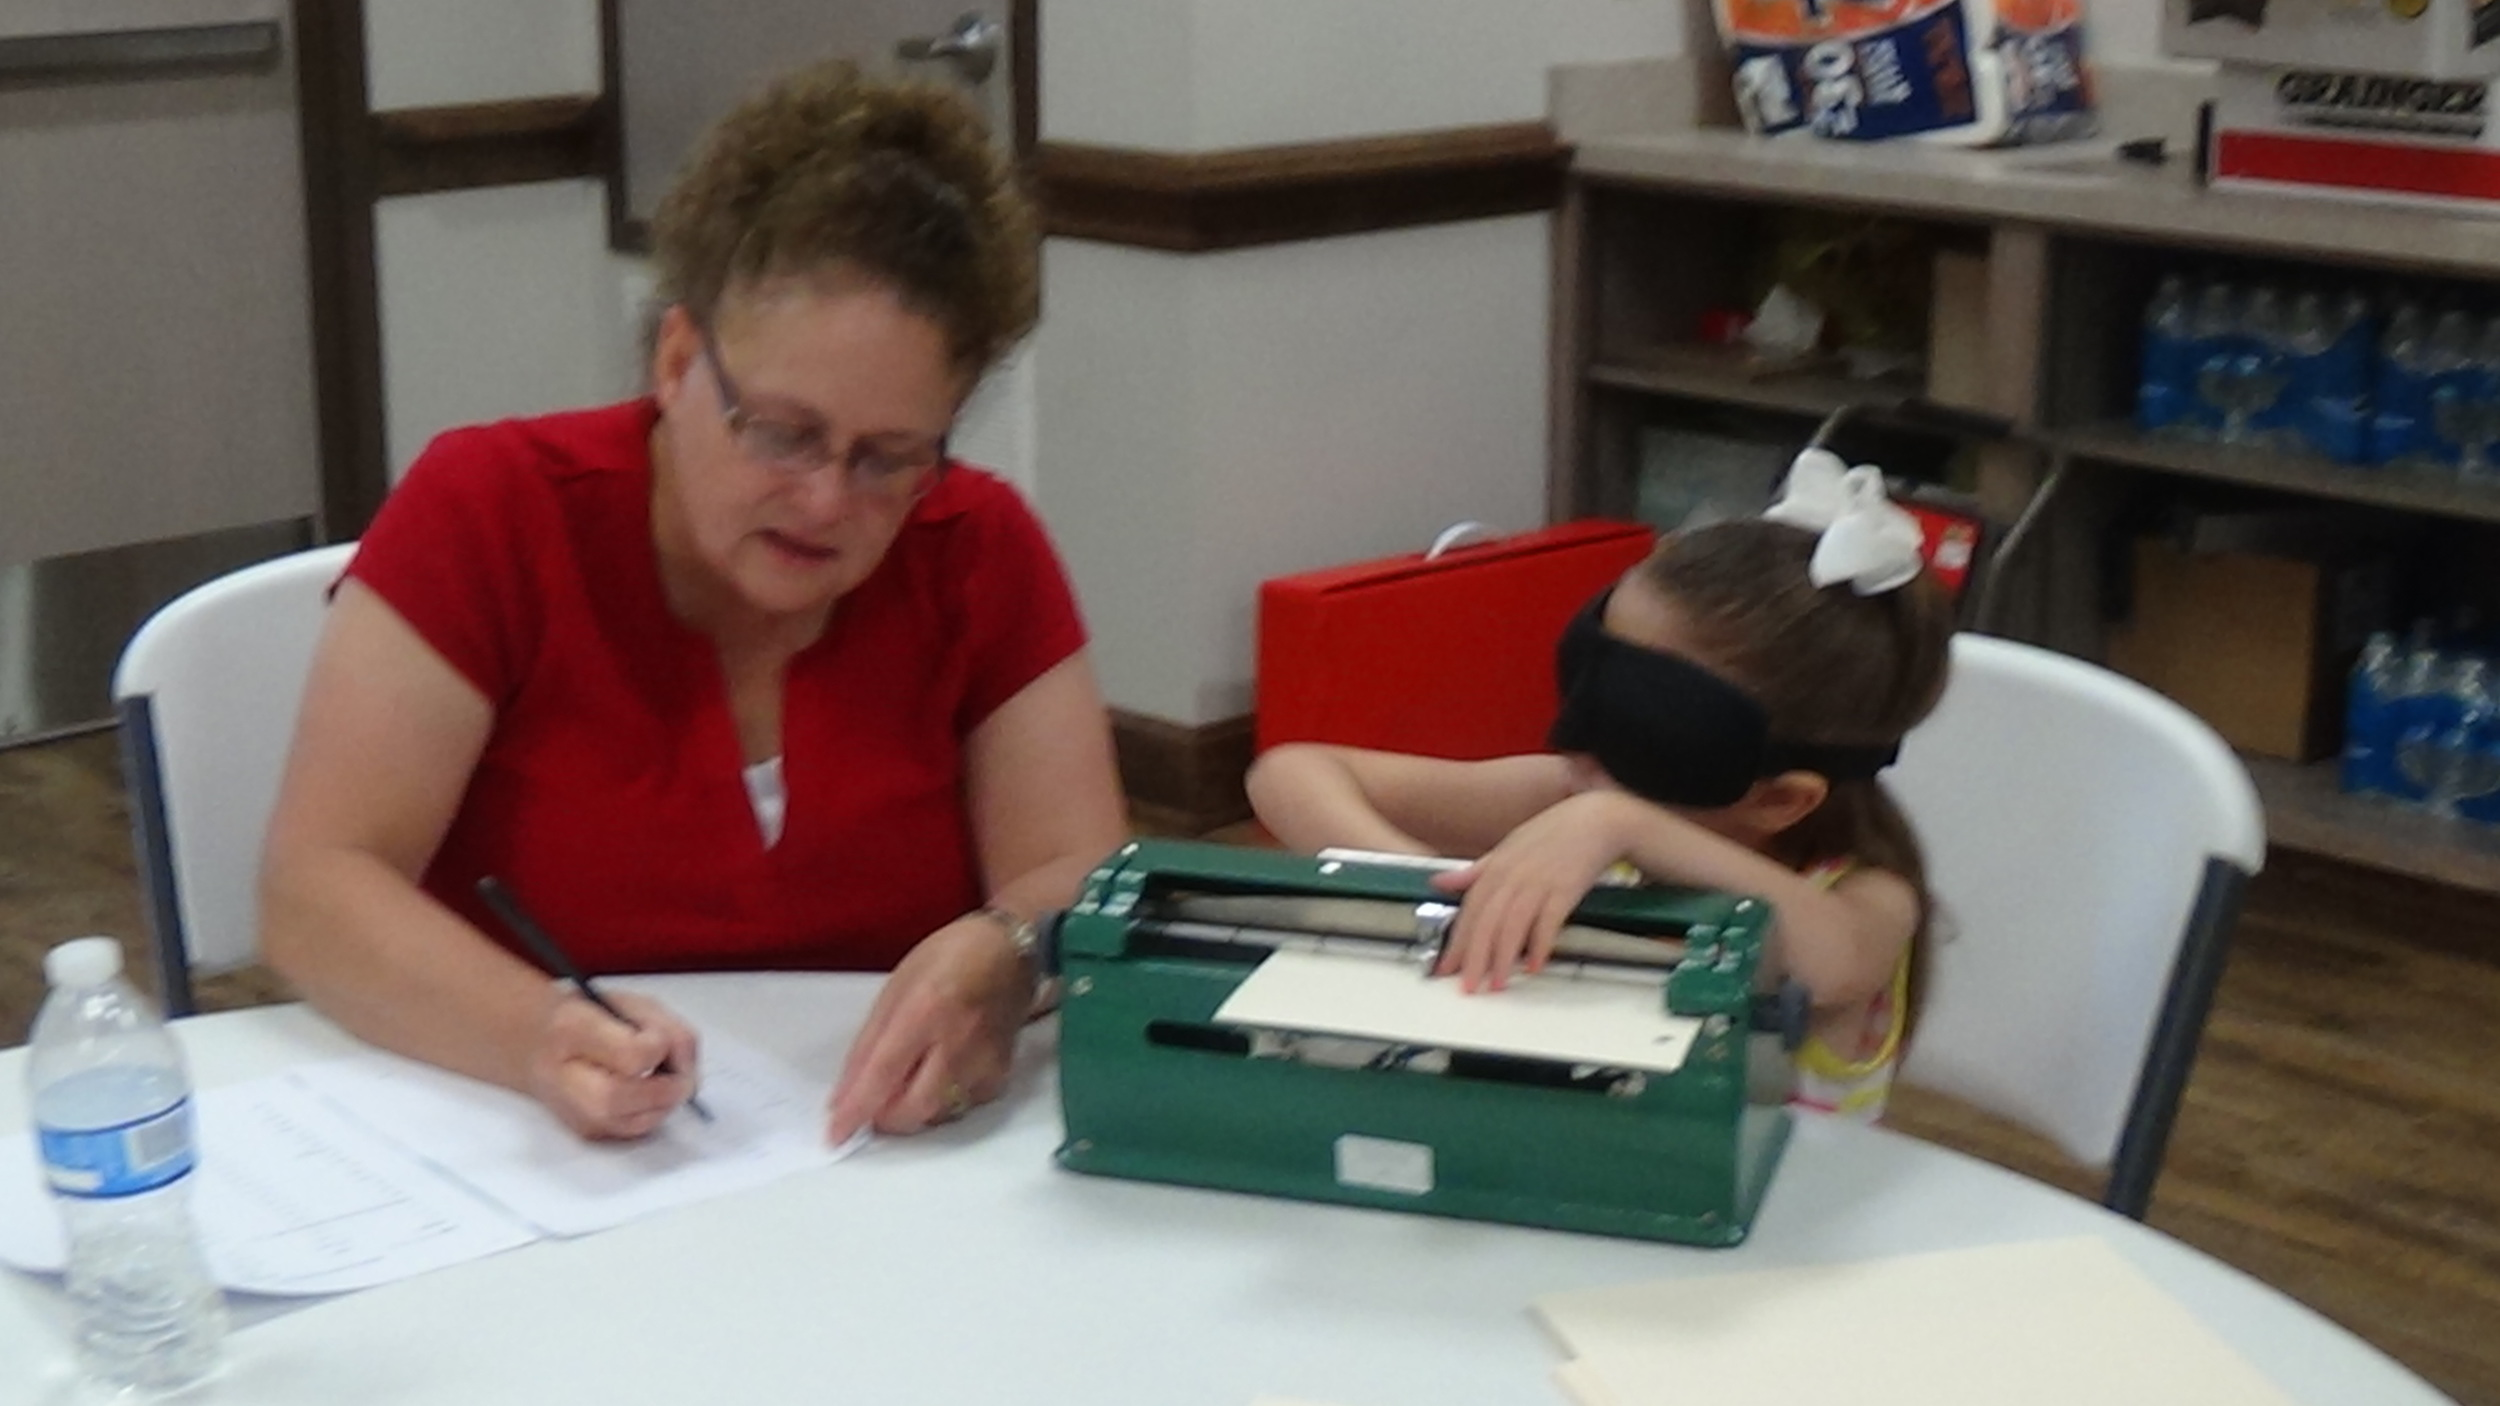 Baylee checks her braillewriting for accuracy